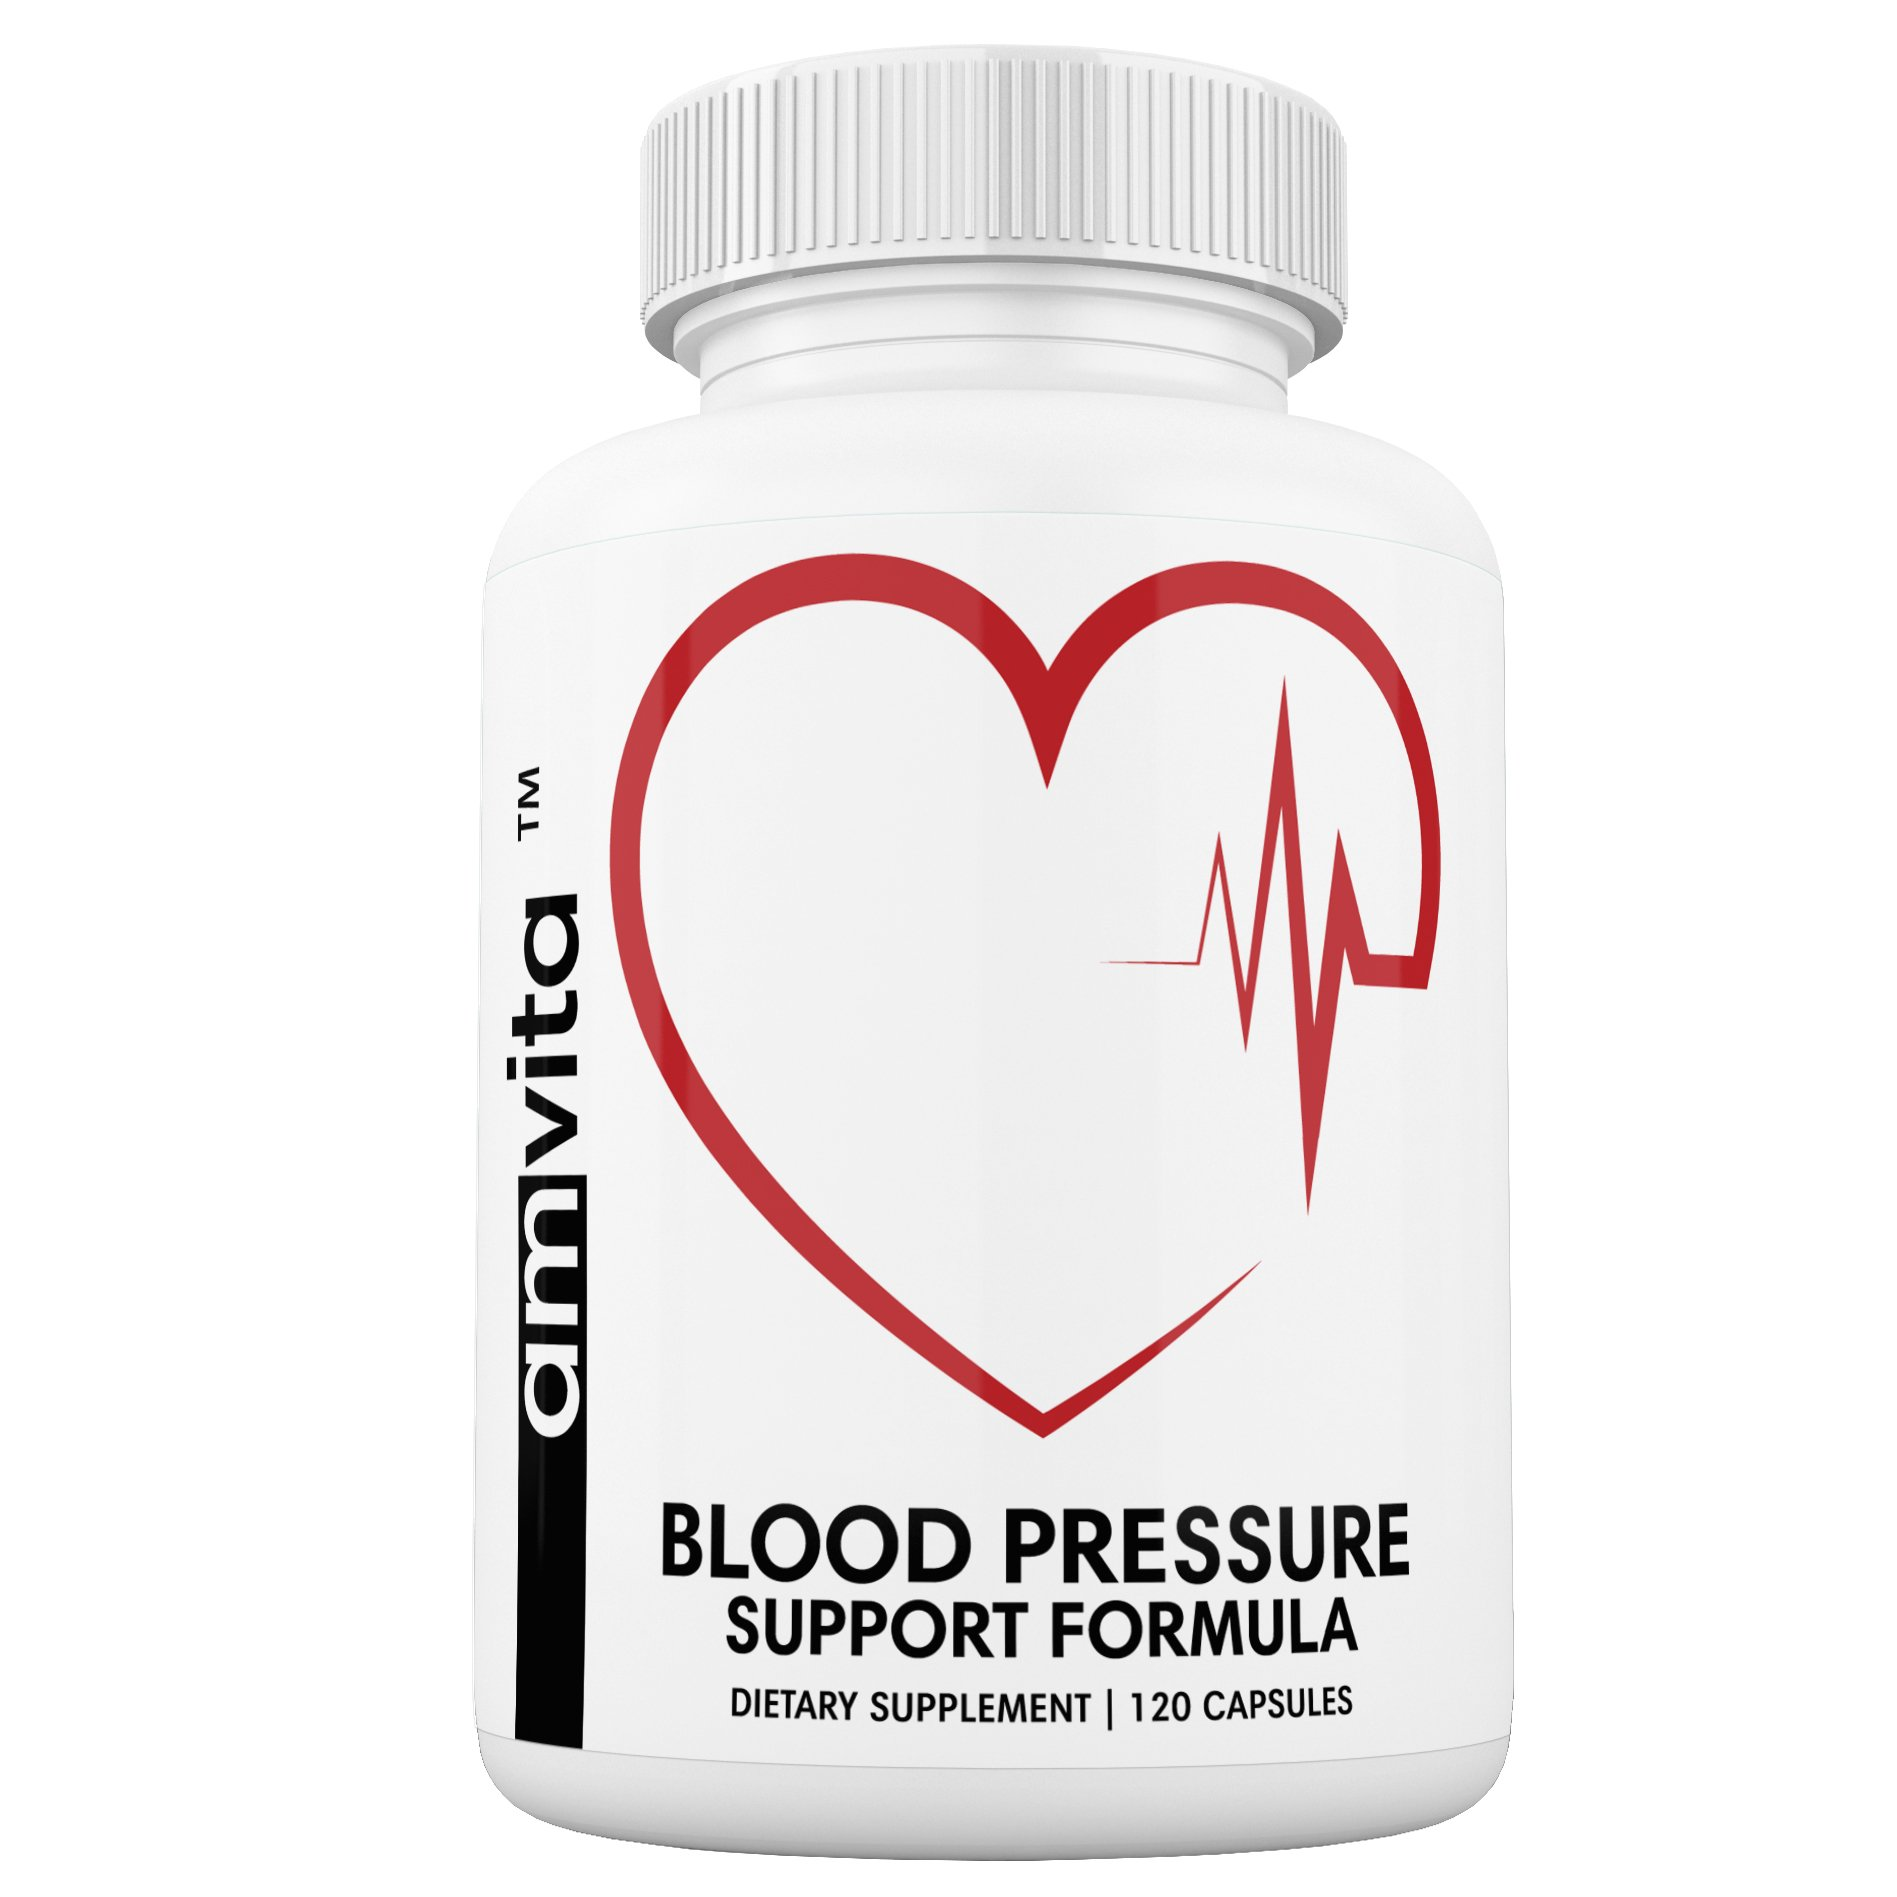 Premium Blood Pressure Support Supplement with Vitamins, Hawthorn, Niacin, Garlic and Hibiscus - Promotes Healthy Blood Pressure - Non-GMO - Made in USA - 120 Capsules